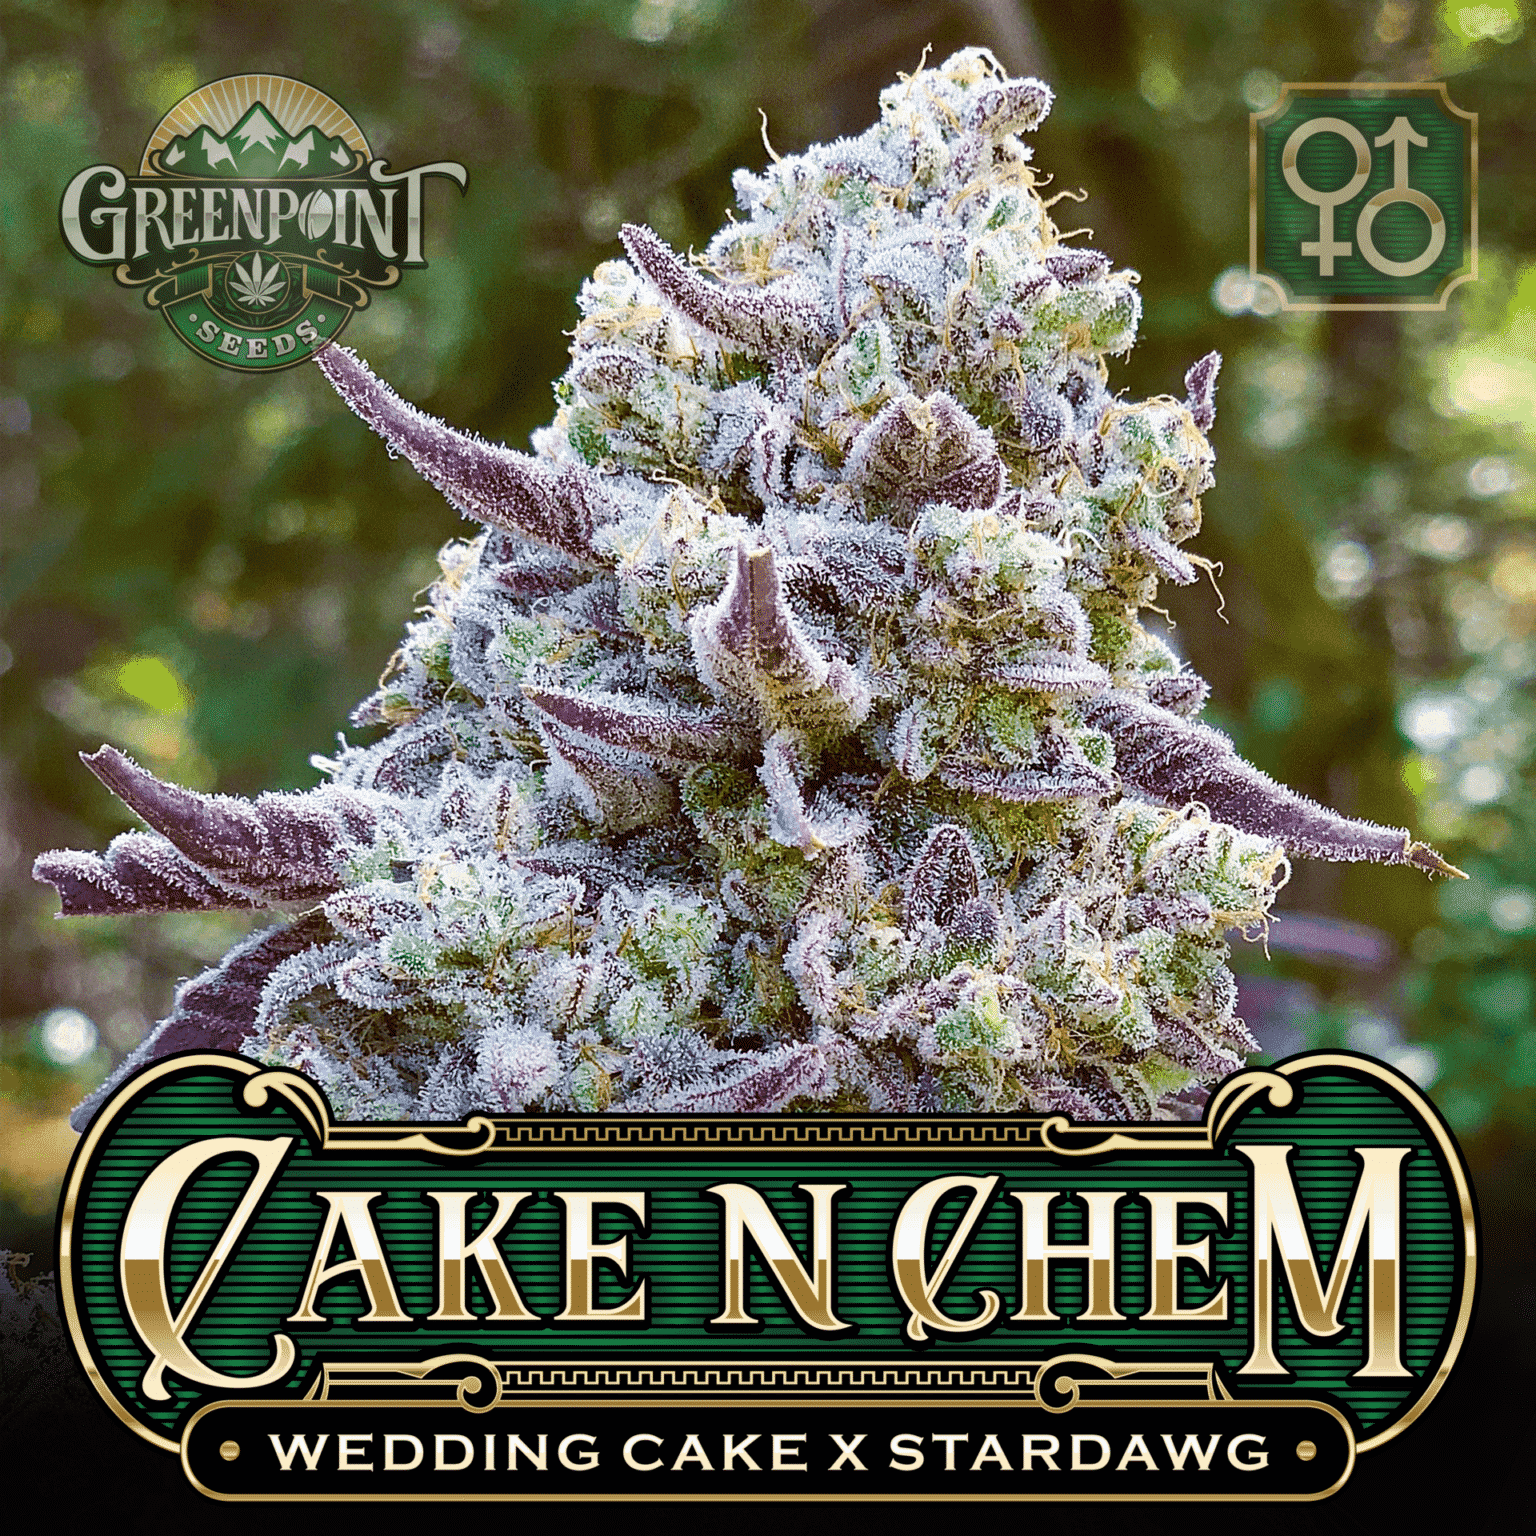 Wedding Cake x Stardawg Seeds | Cake N Chem Cannabis Seeds - US Seed Bank